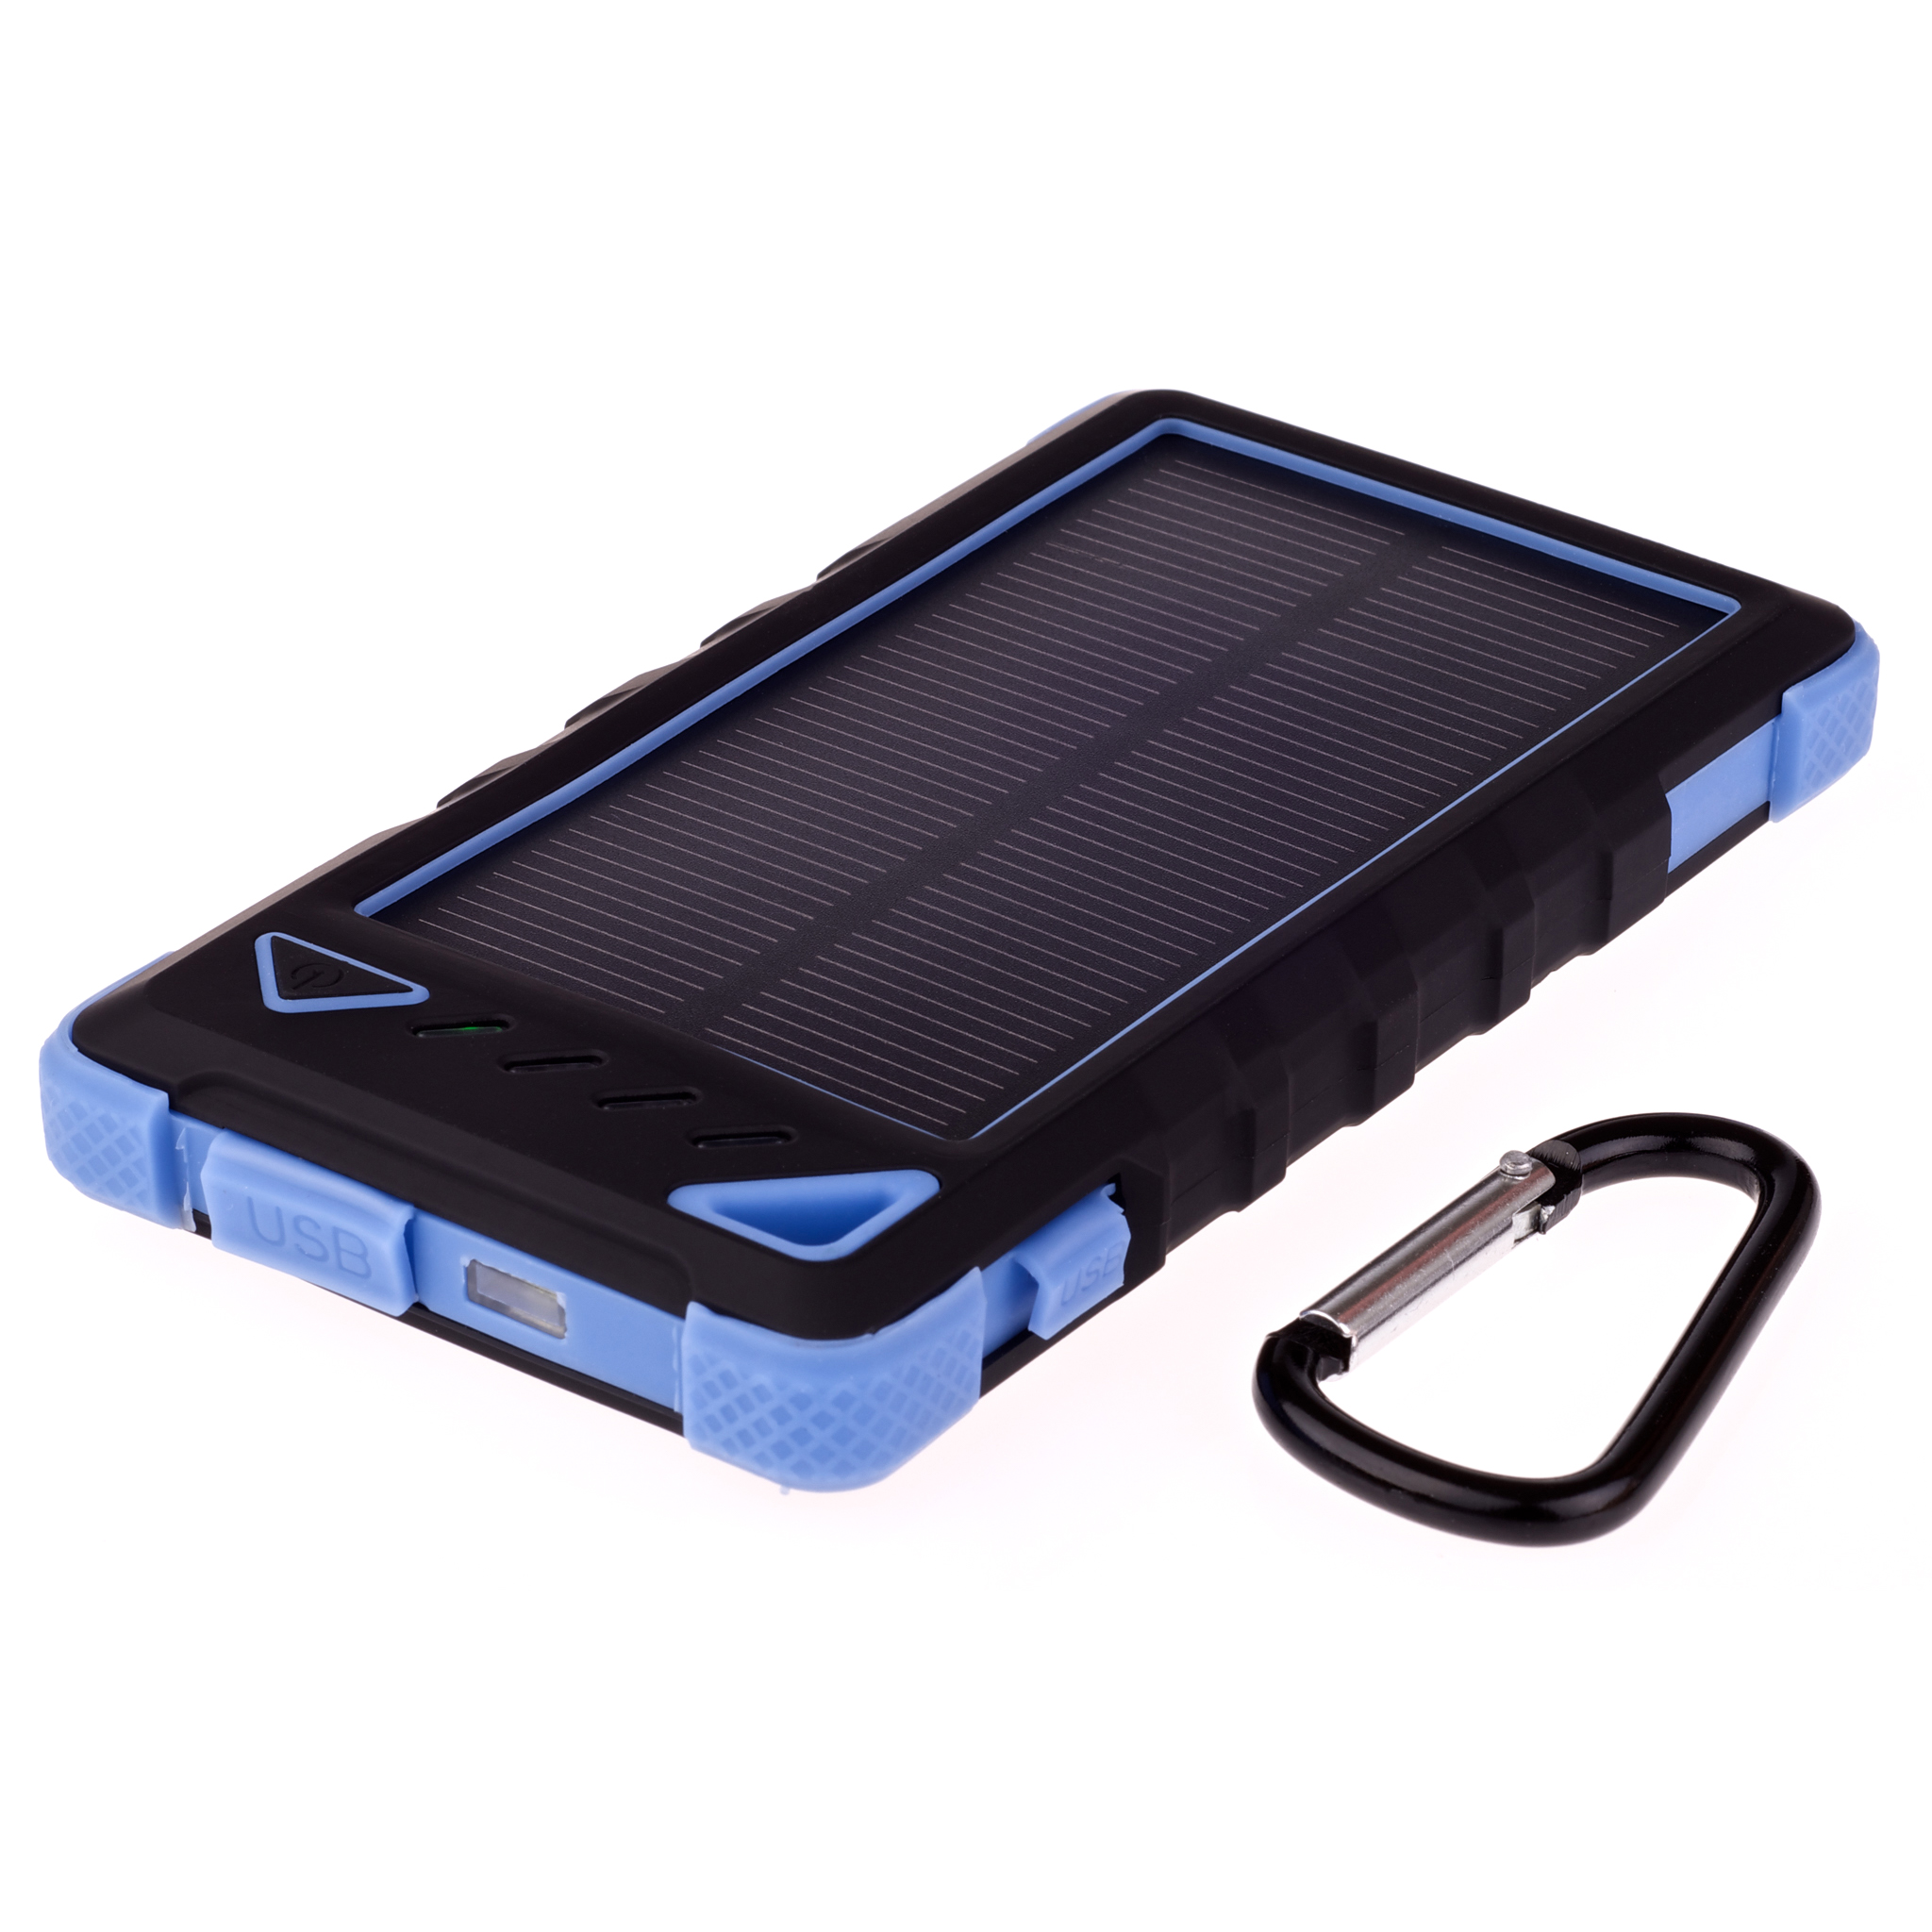 Den mest populære Power Bank, Power solar